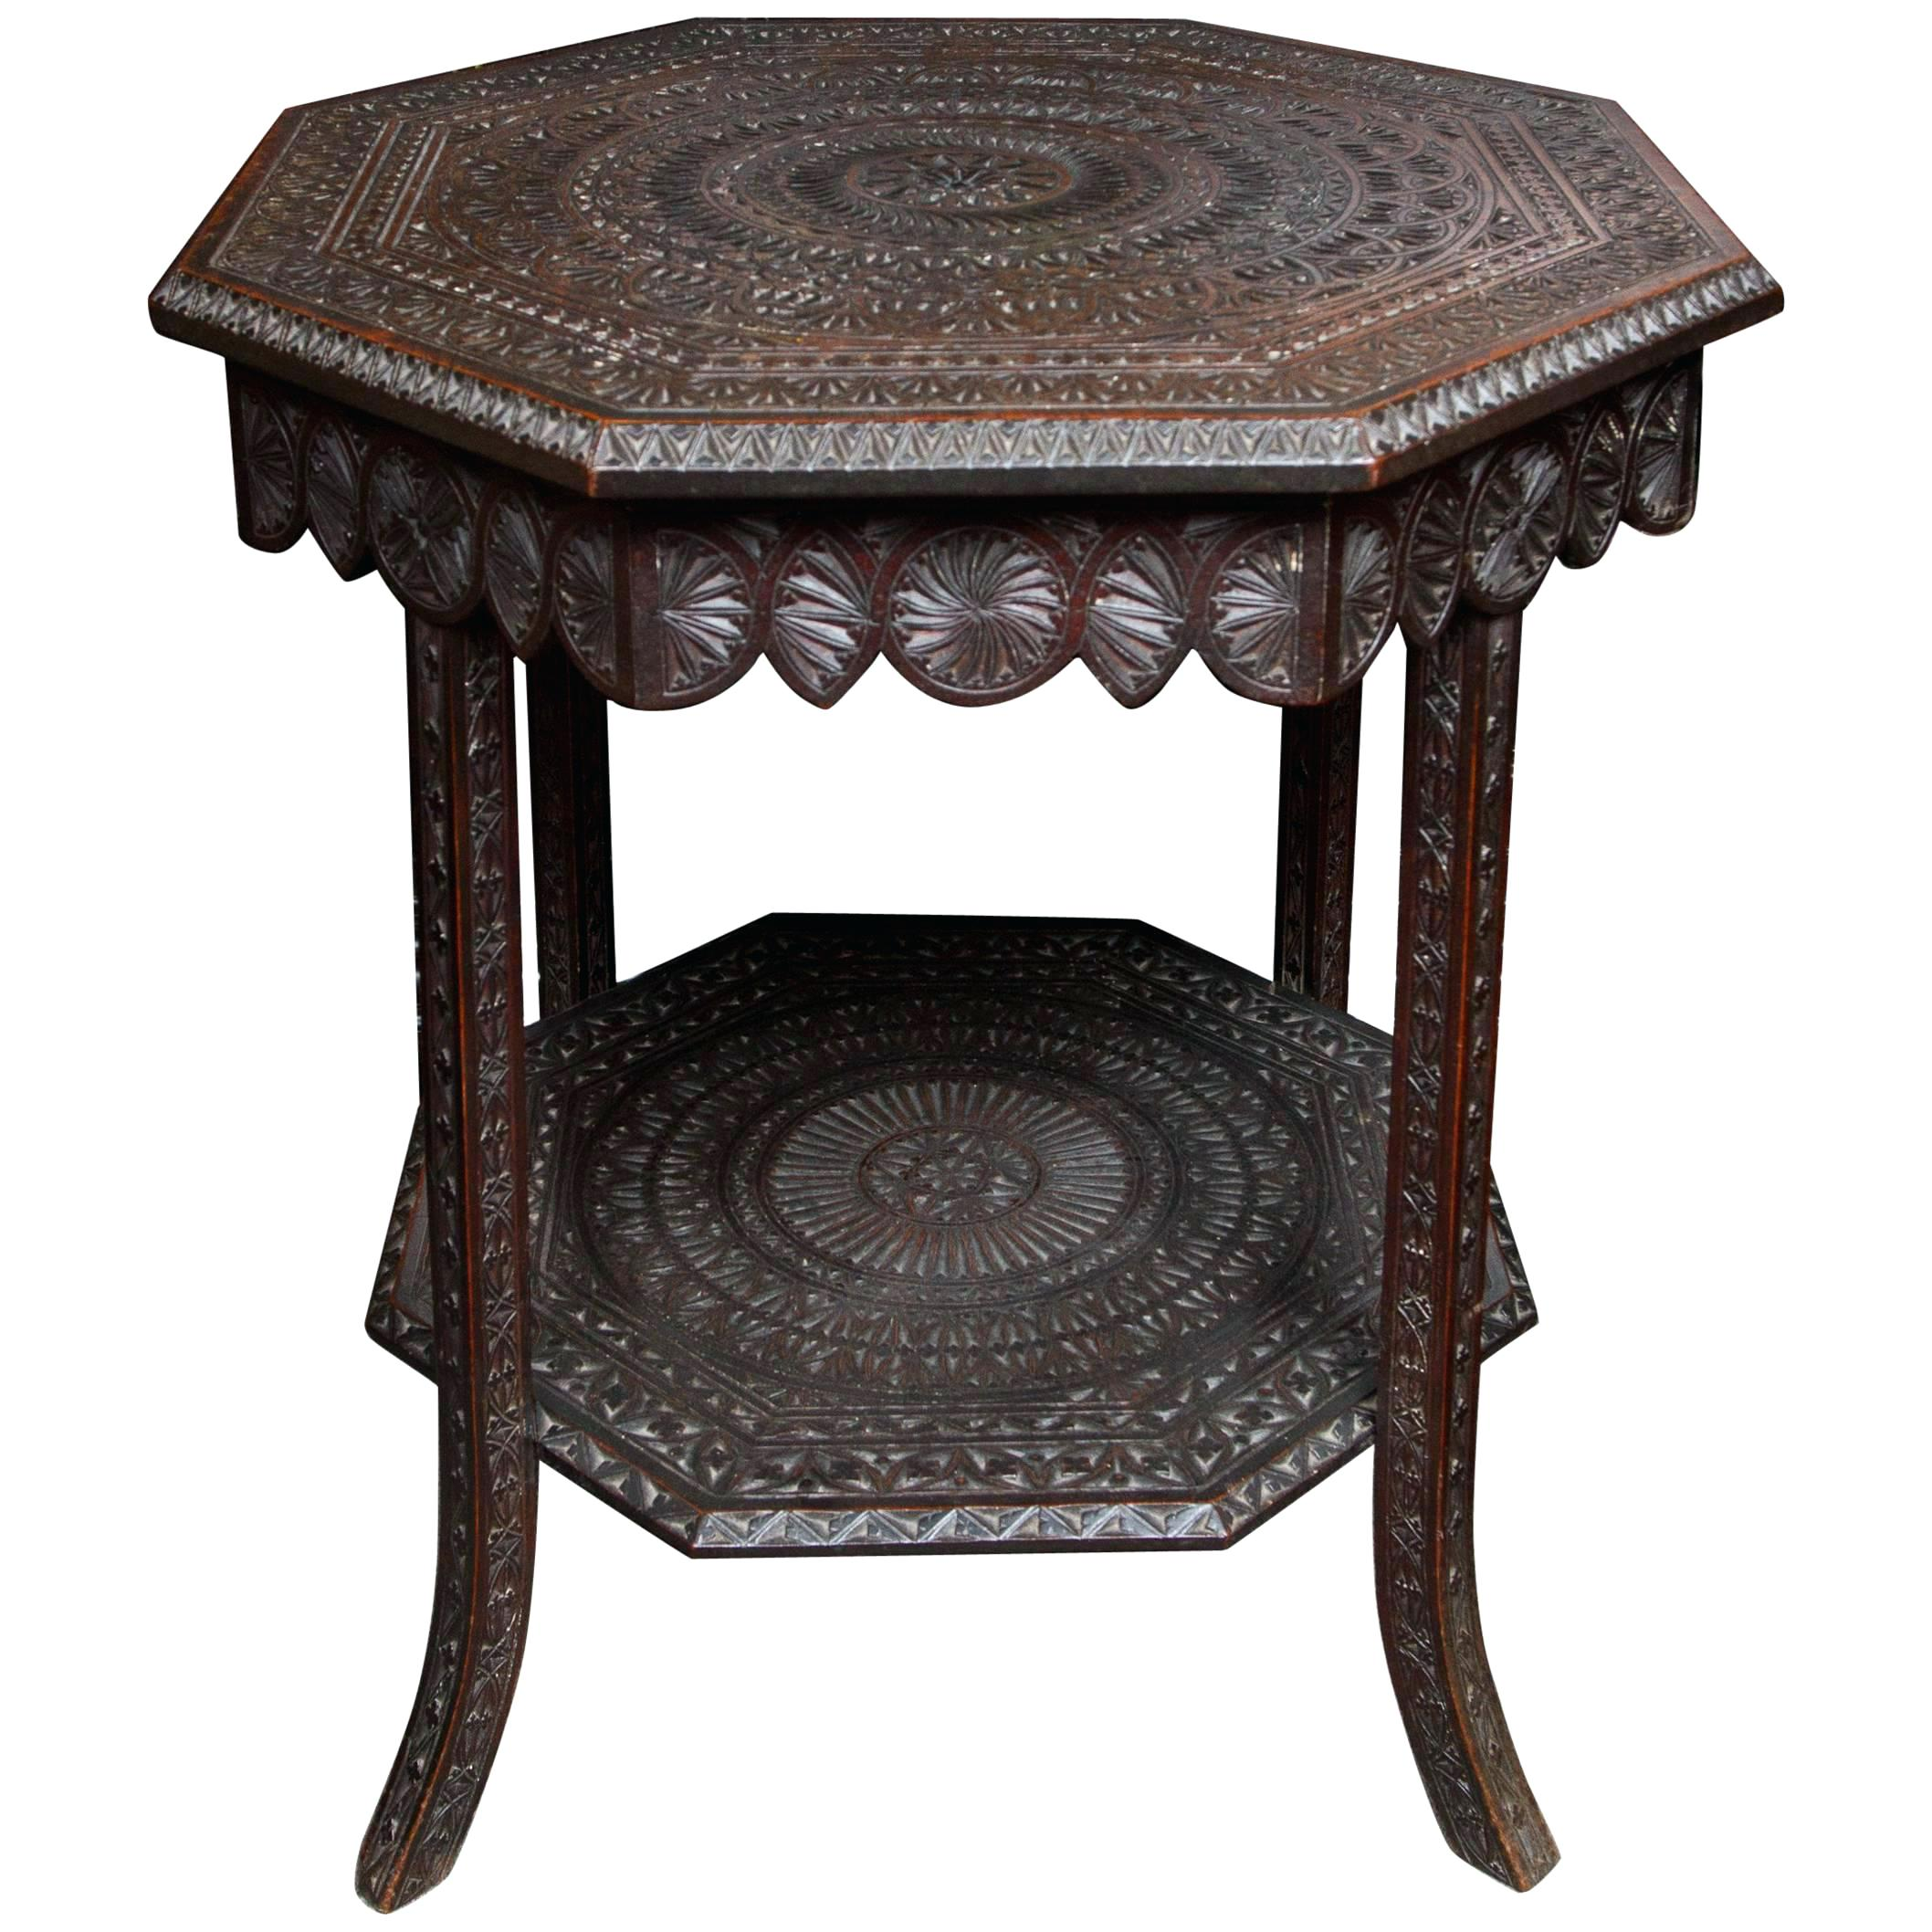 wooden outdoor side tables patio the arts crafts carved wood table for metal clearance transition trim skinny end ikea small oak white tray round outside furniture couch solid